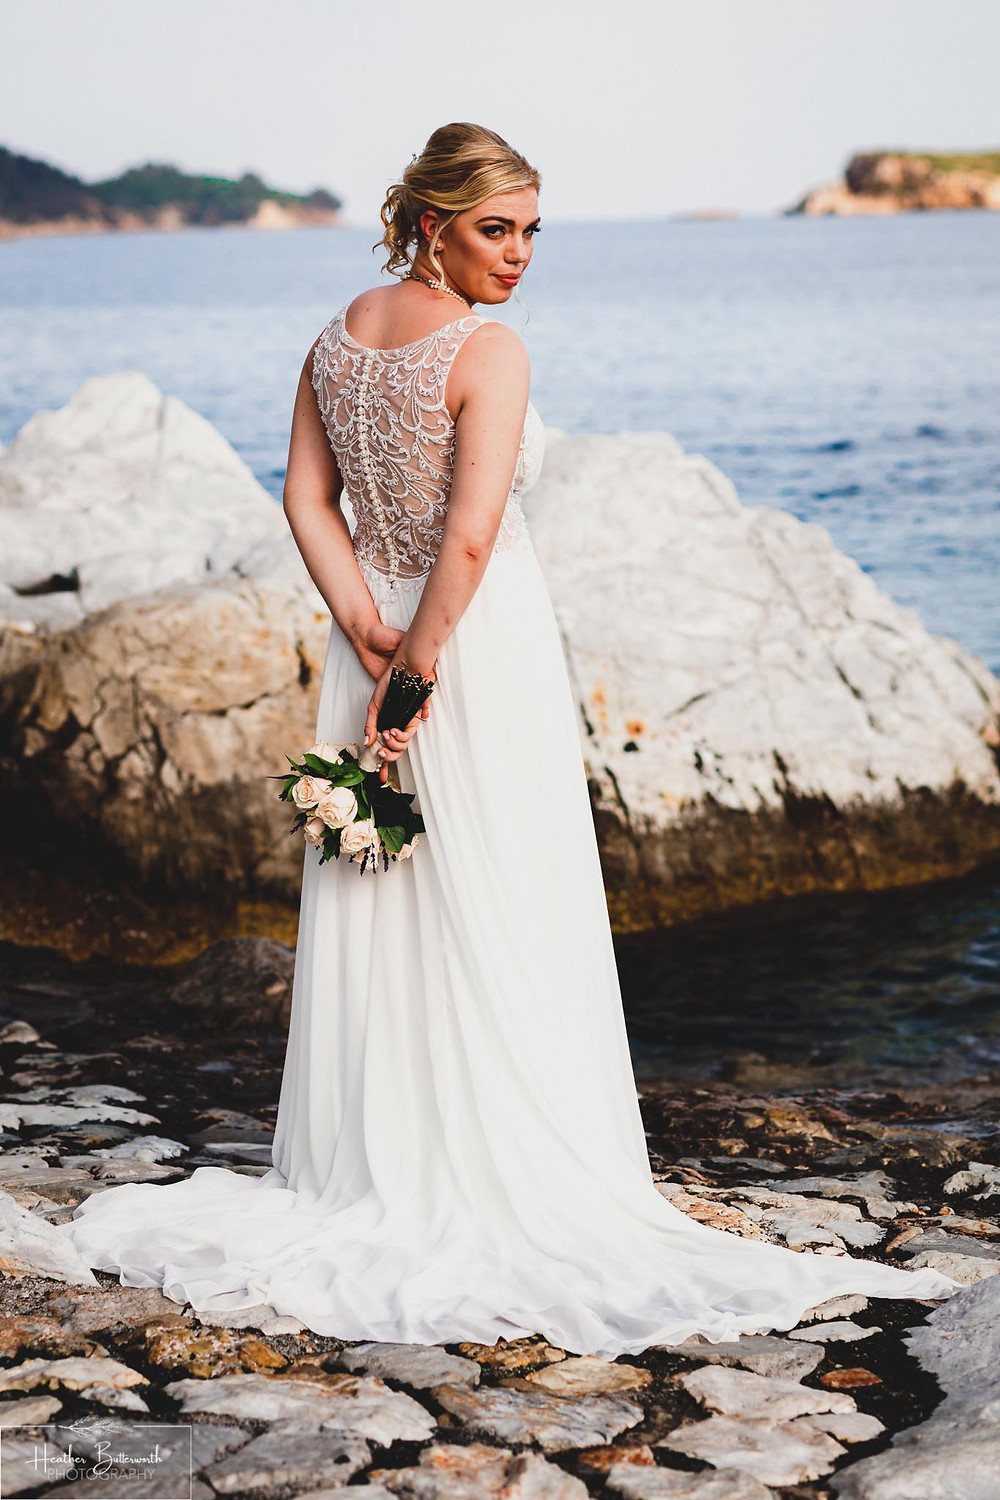 Bride on the beach looking around after her wedding at The Bourtzi in Skiathos Town, Greece